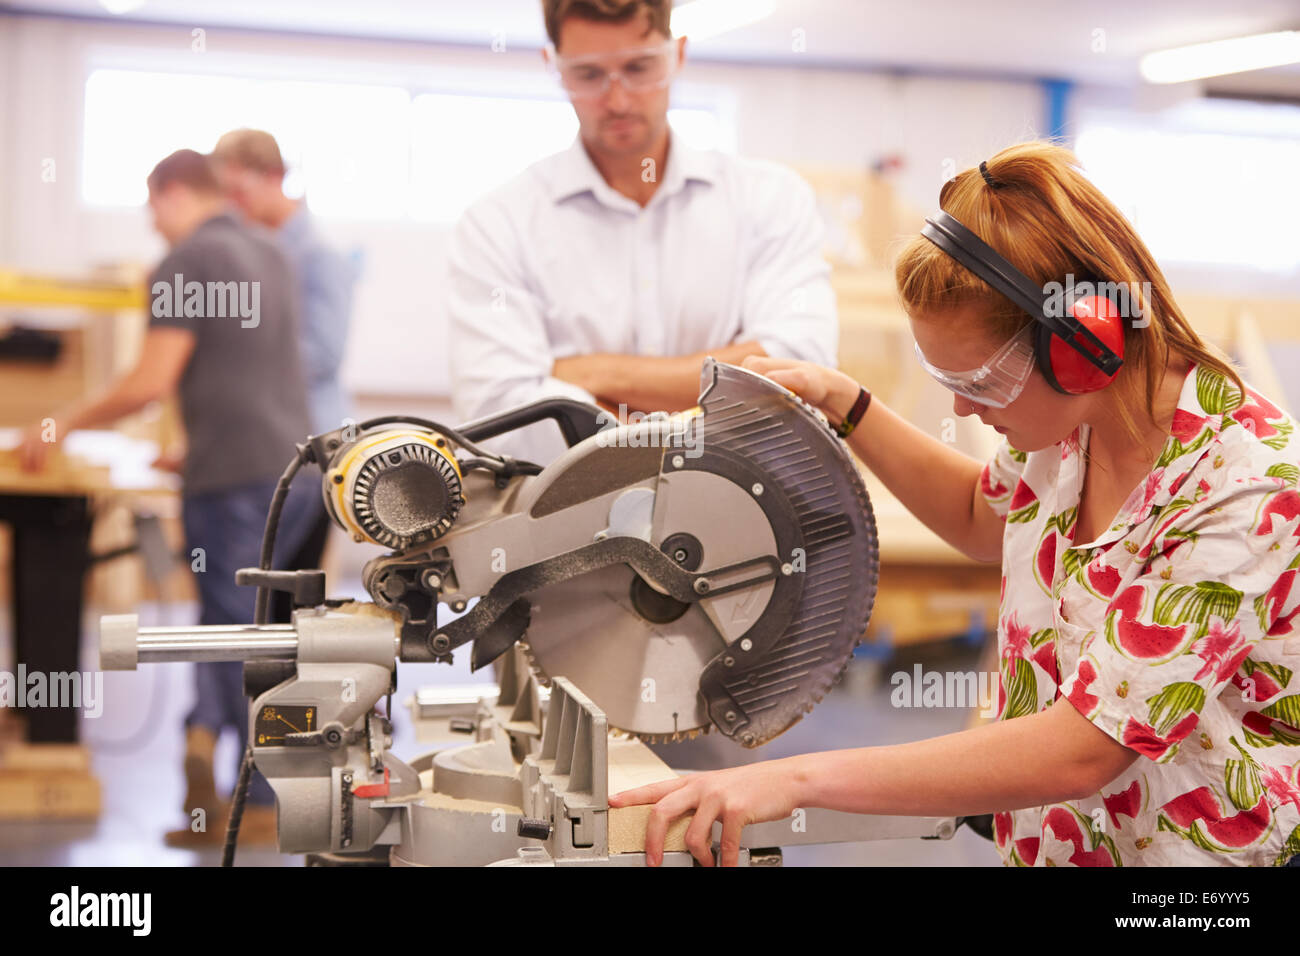 Student And Teacher In Carpentry Class Using Circular Saw - Stock Image